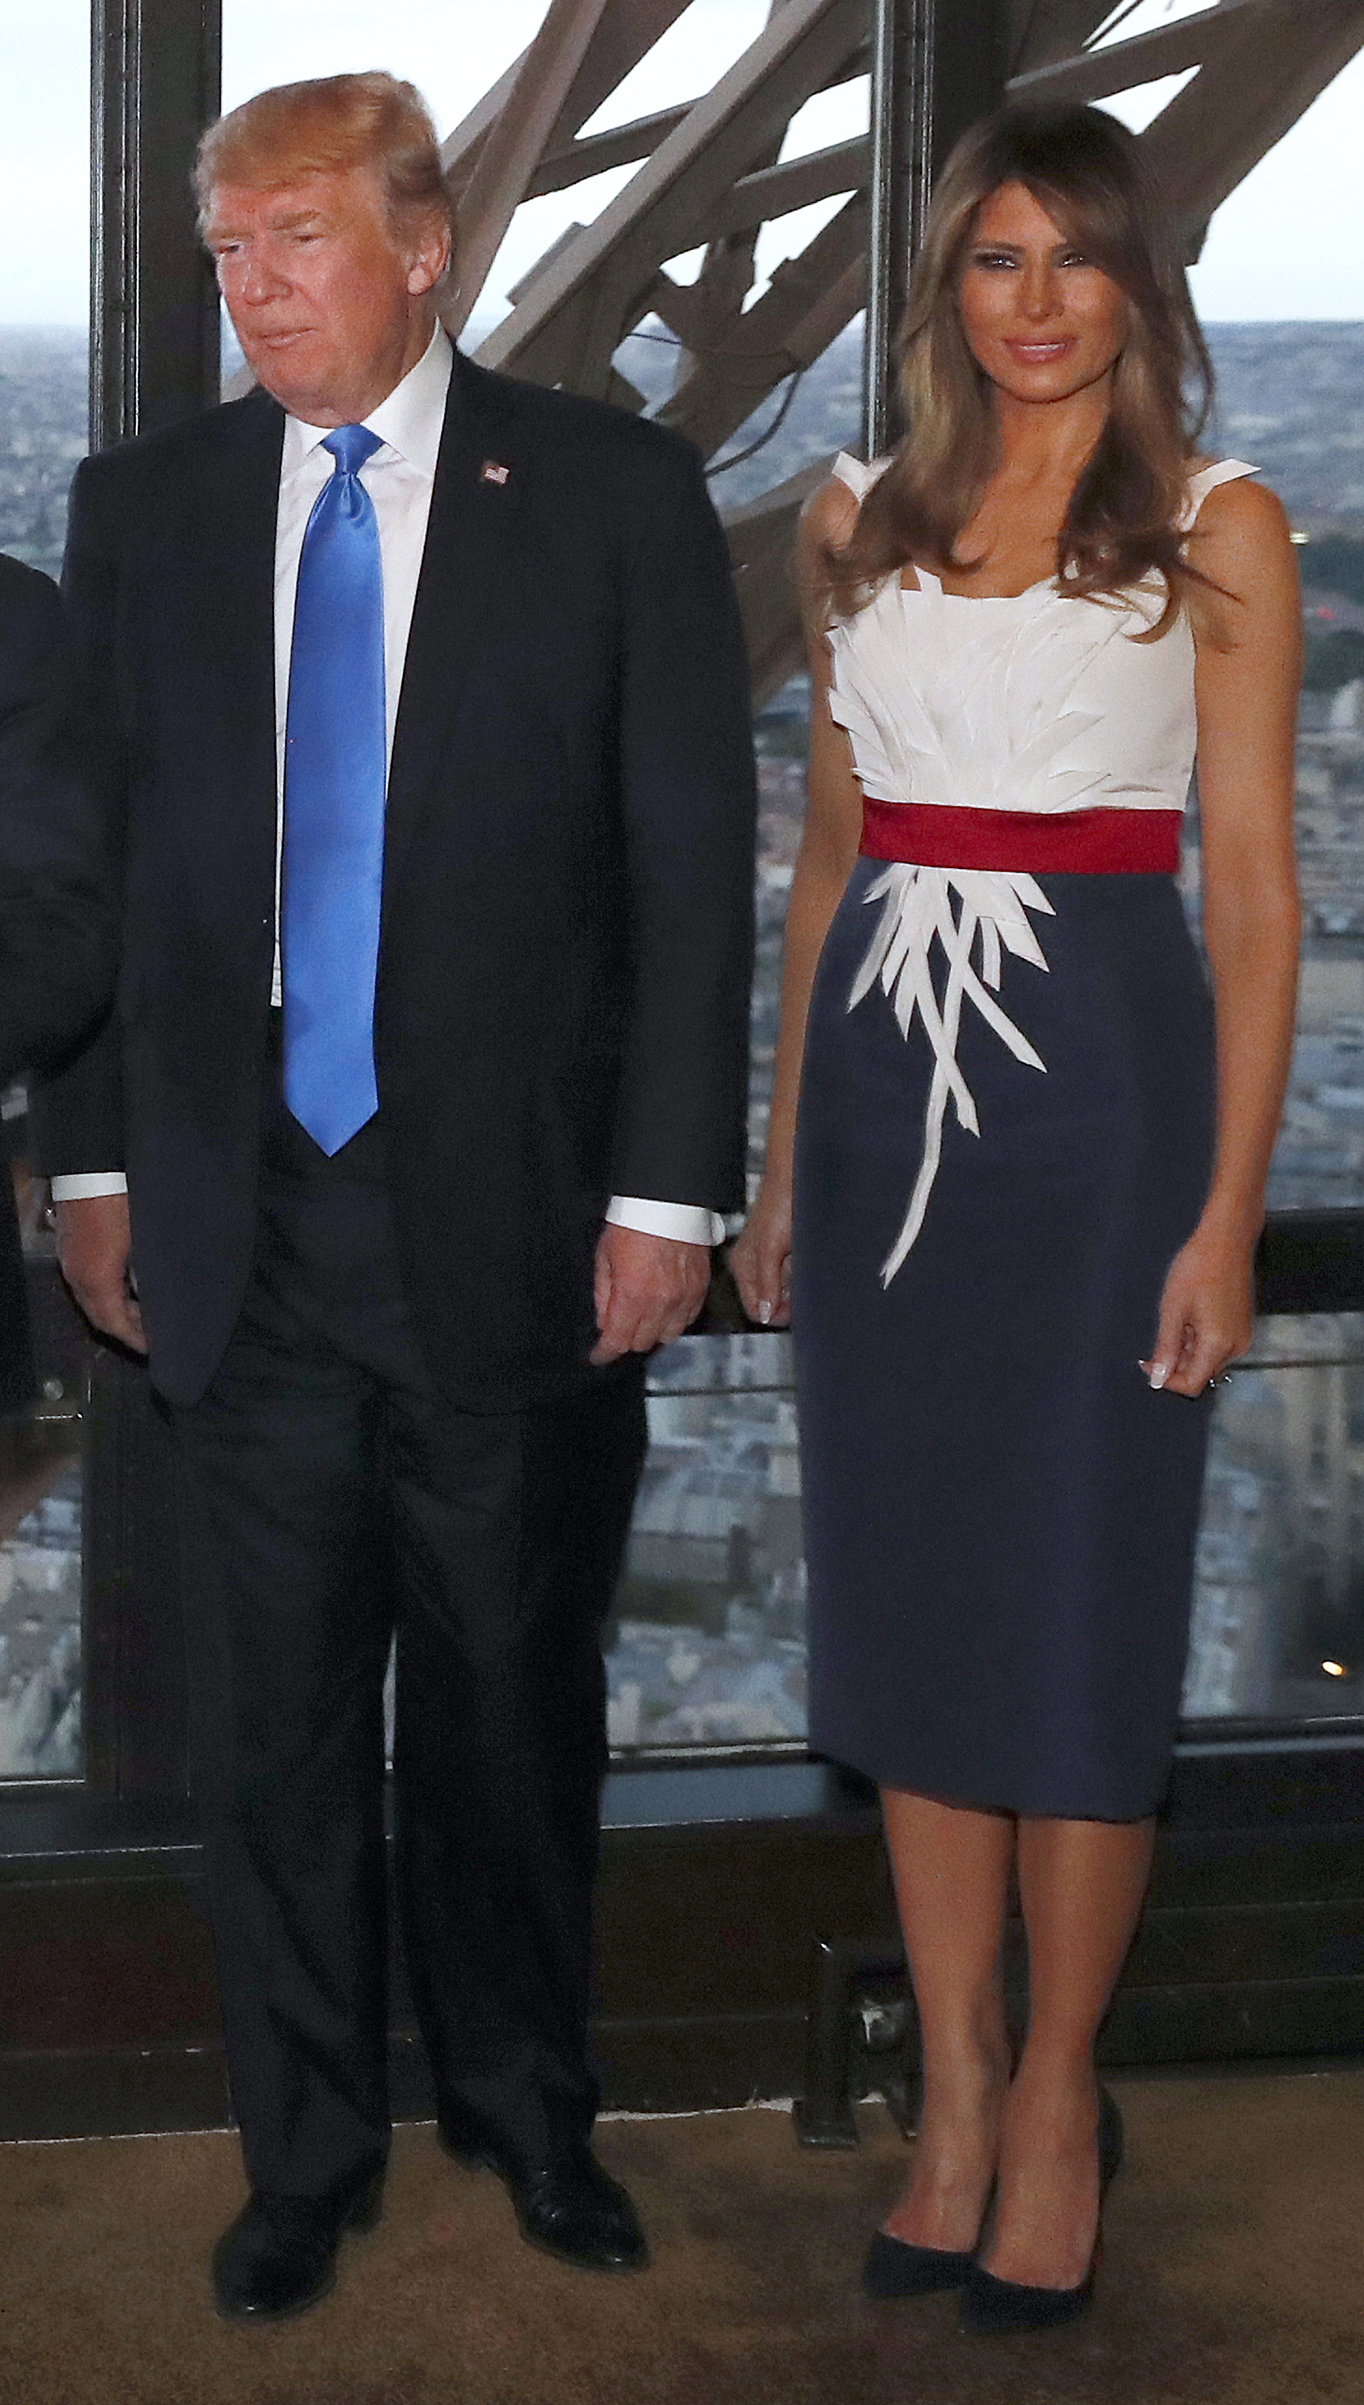 President Donald Trump (L) and first lady Melania Trump (R) in a dress created by  Hervé Pierre, pose upon their arrival for a dinner with French President and his wife, at Le Jules Verne Restaurant on the Eiffel Tower in Paris, on July 13, 2017.